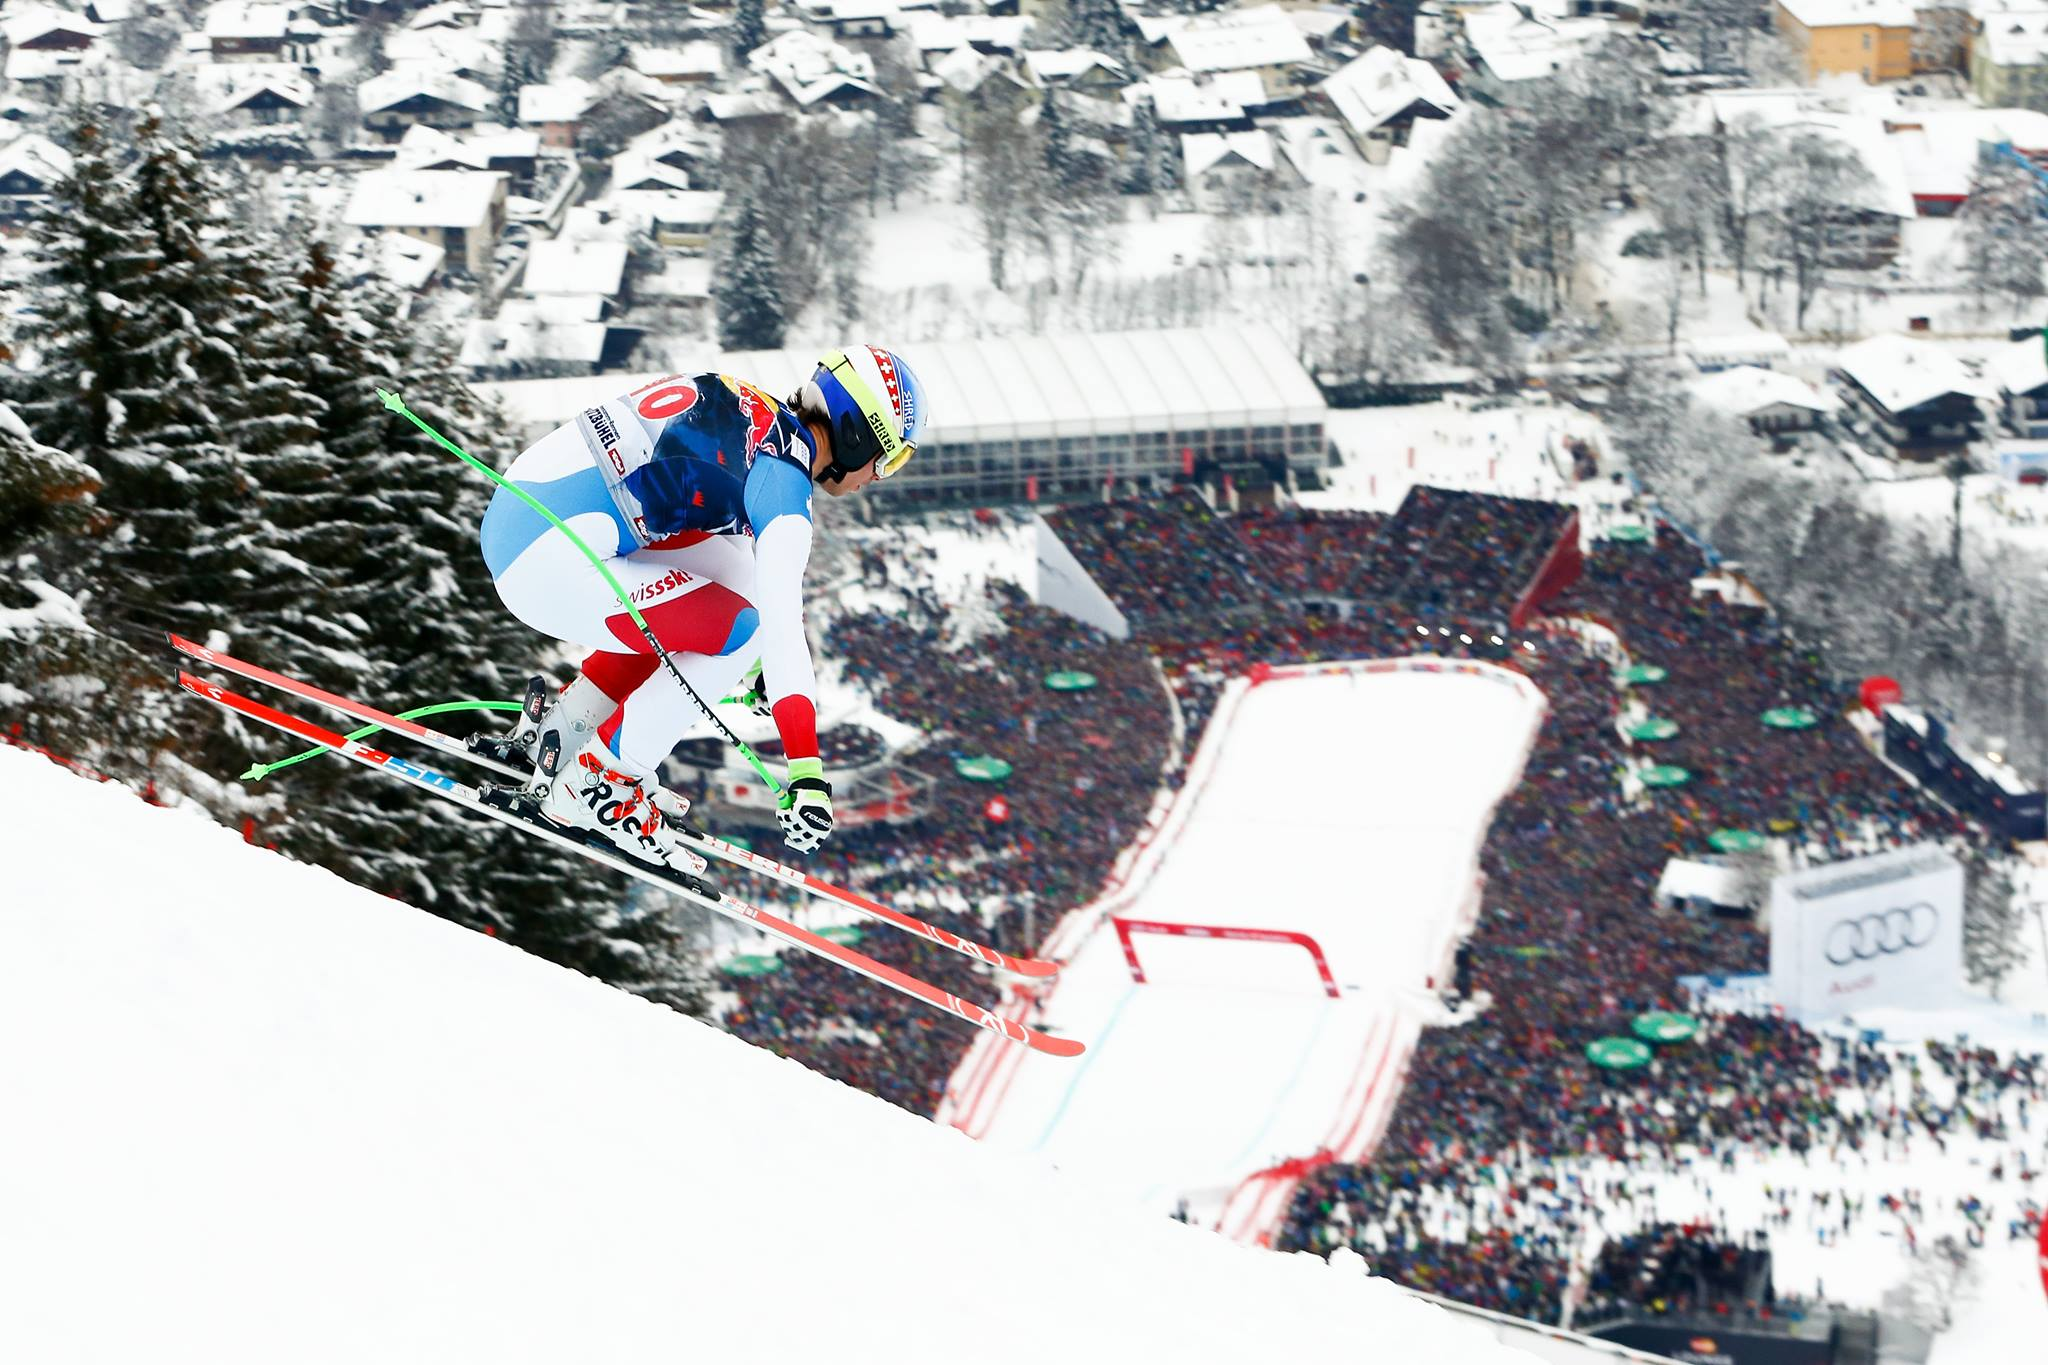 Carlo Janka, this weekend's champion, catching air at speeds that might make a normal human pass out. PHOTO: Carlo Janka/Facebook